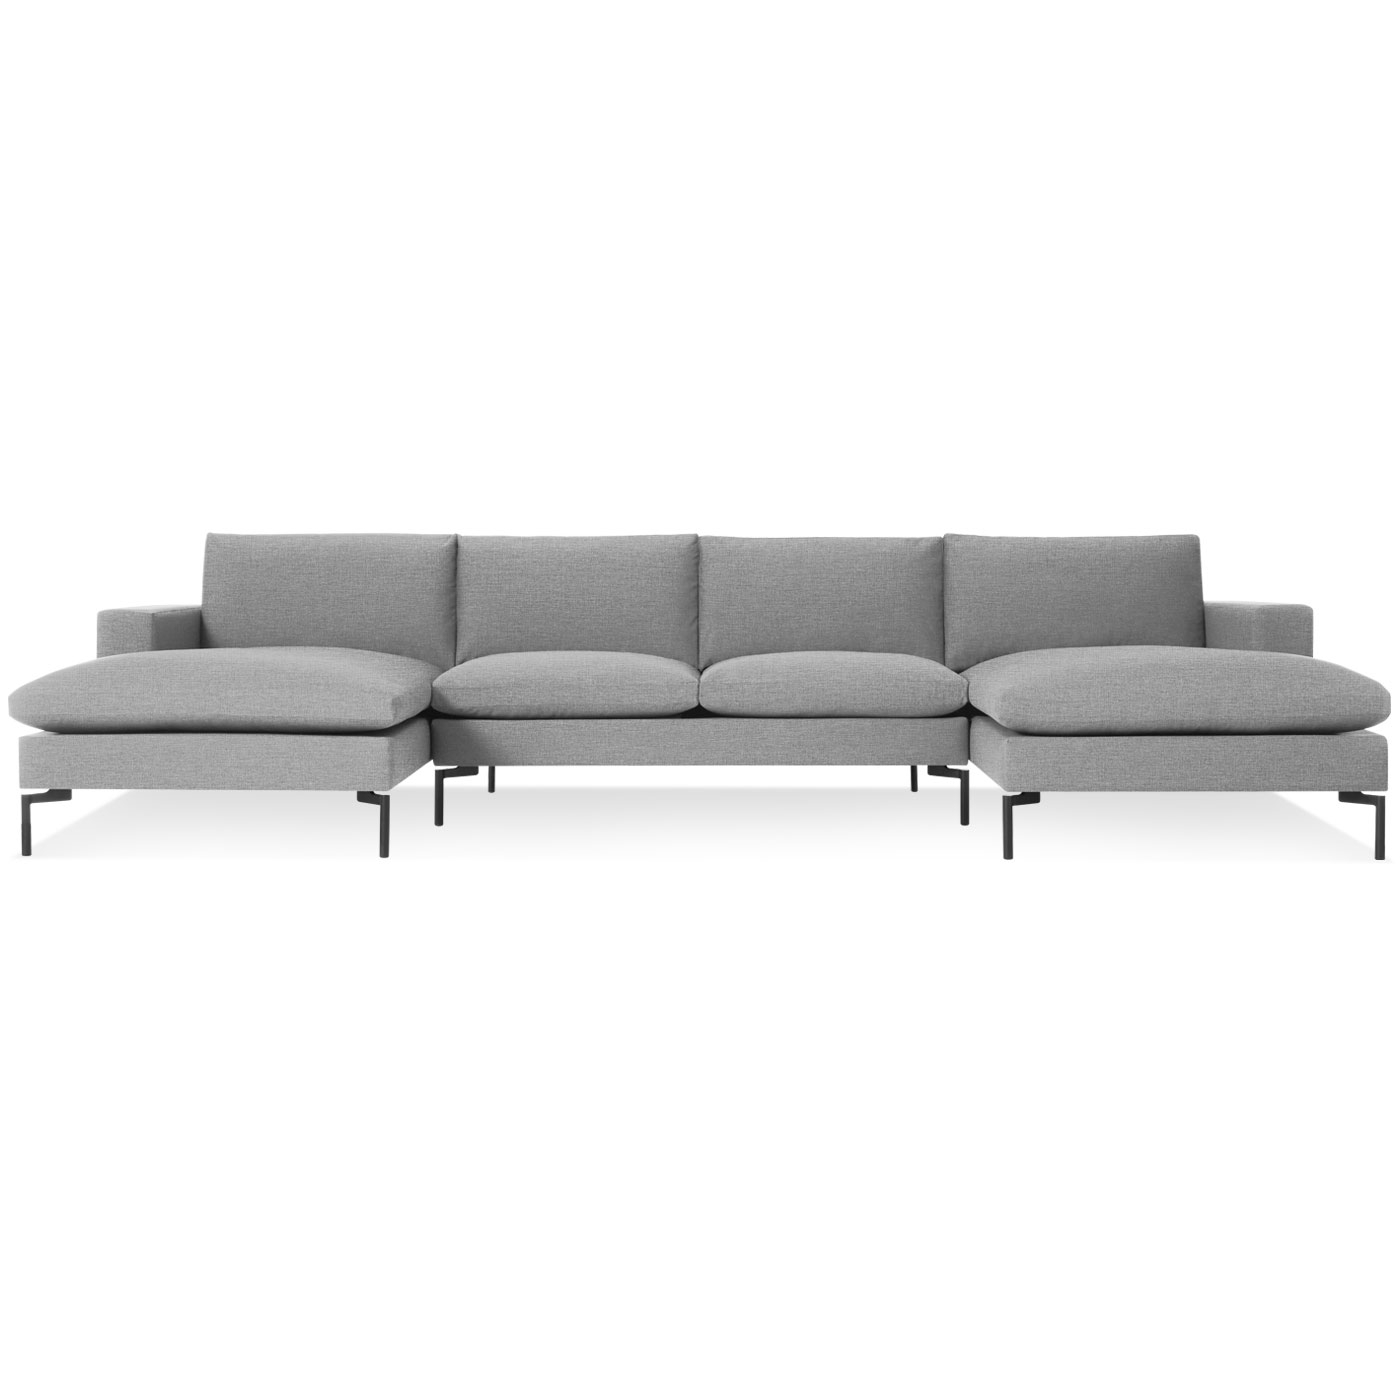 Well Known Modern U Shaped Sectionals Intended For New Standard Modern U Shaped Sectional Sofa (View 20 of 20)